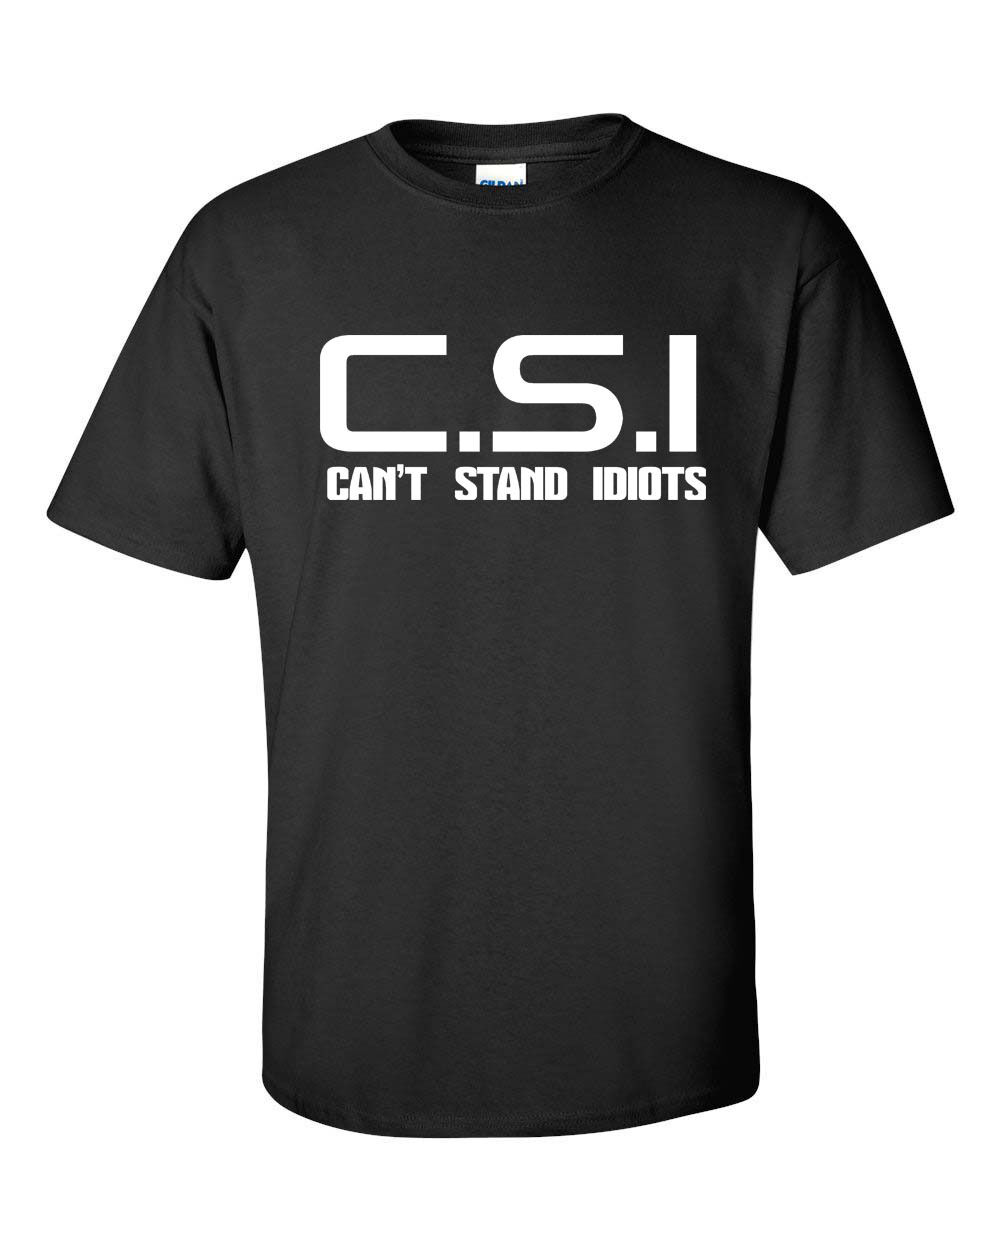 C.S.I Can't Stand Idiots TV Spoof Funny Men's <font><b>Tee</b></font> <font><b>Shirt</b></font> Small to <font><b>6</b></font> <font><b>XL</b></font> image